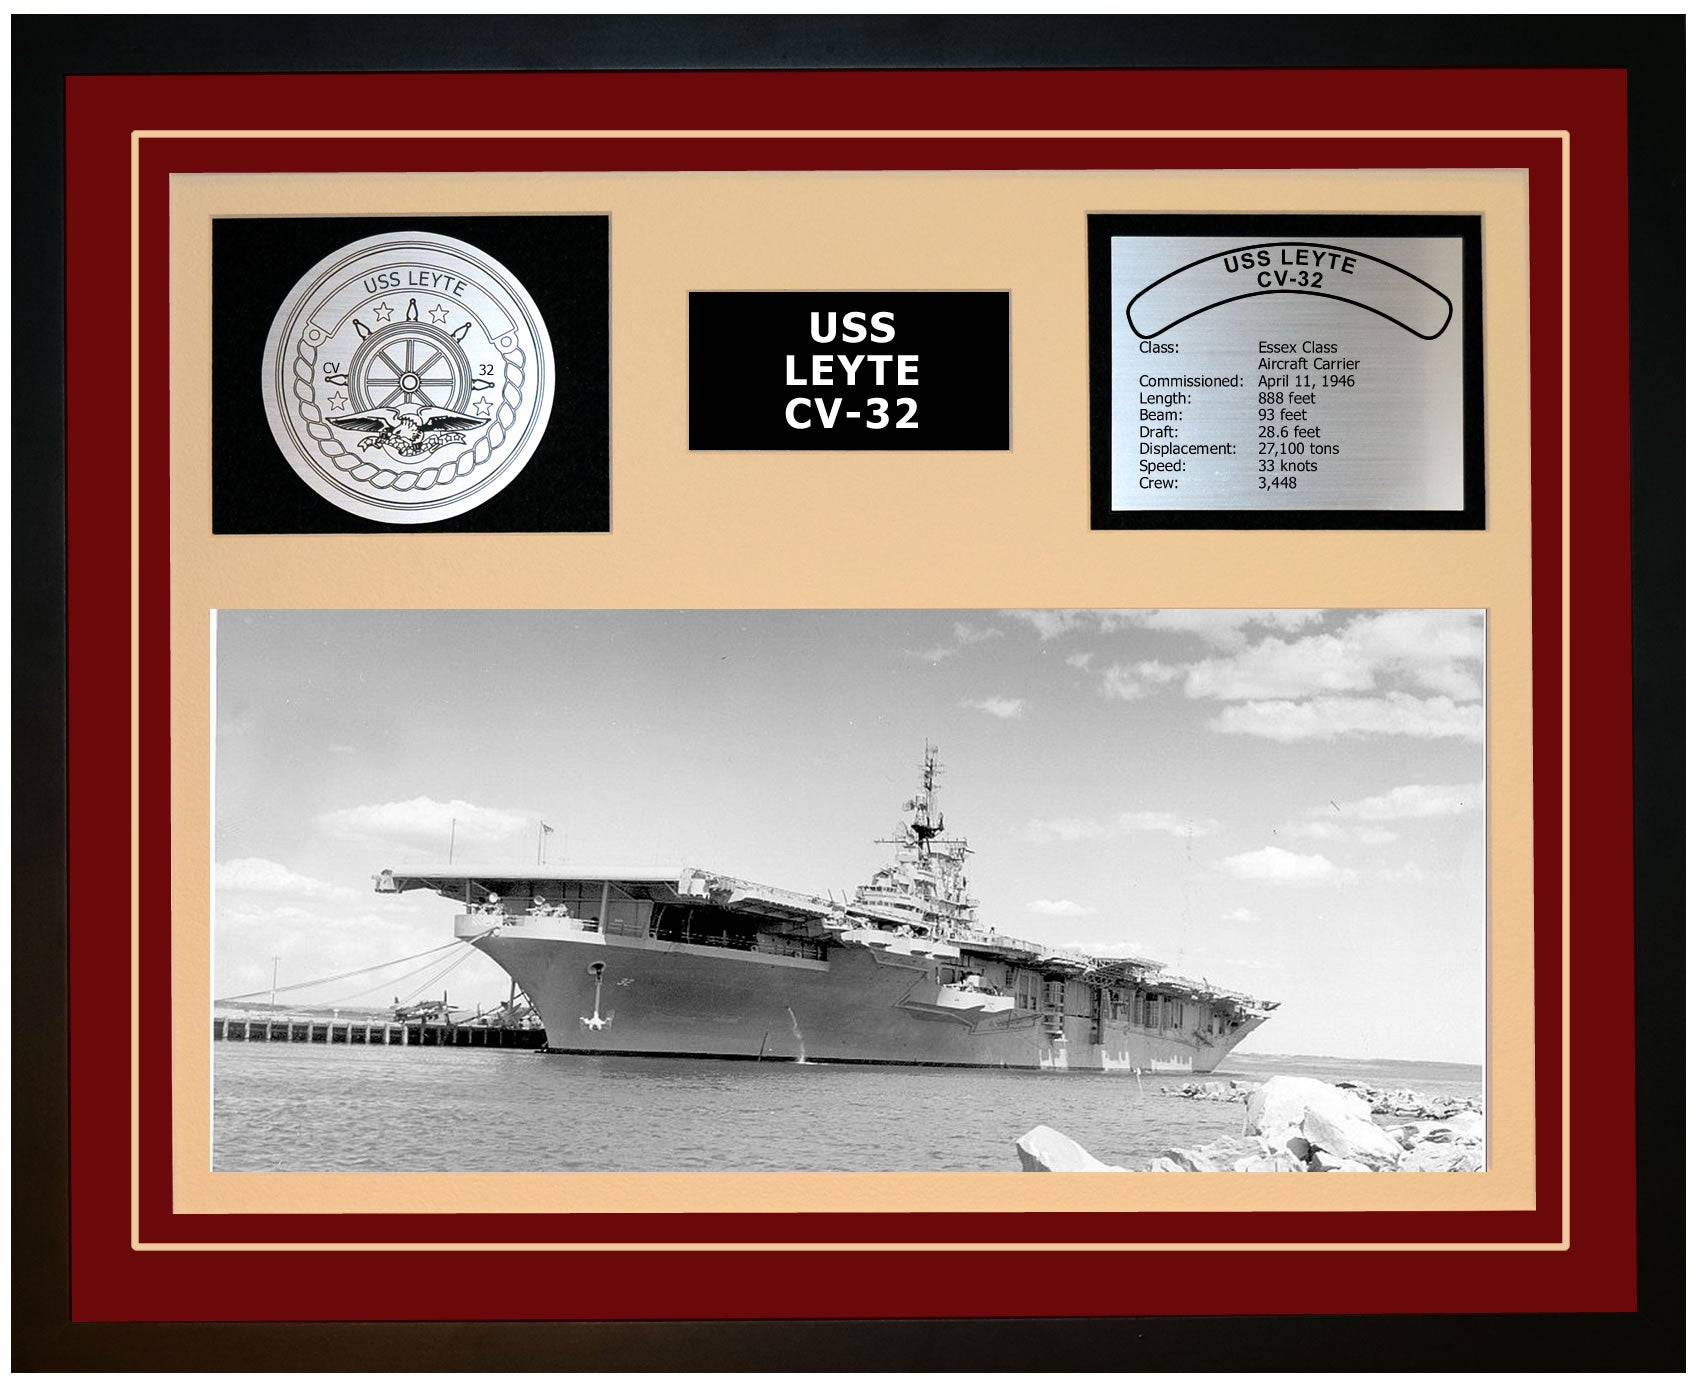 USS LEYTE CV-32 Framed Navy Ship Display Burgundy